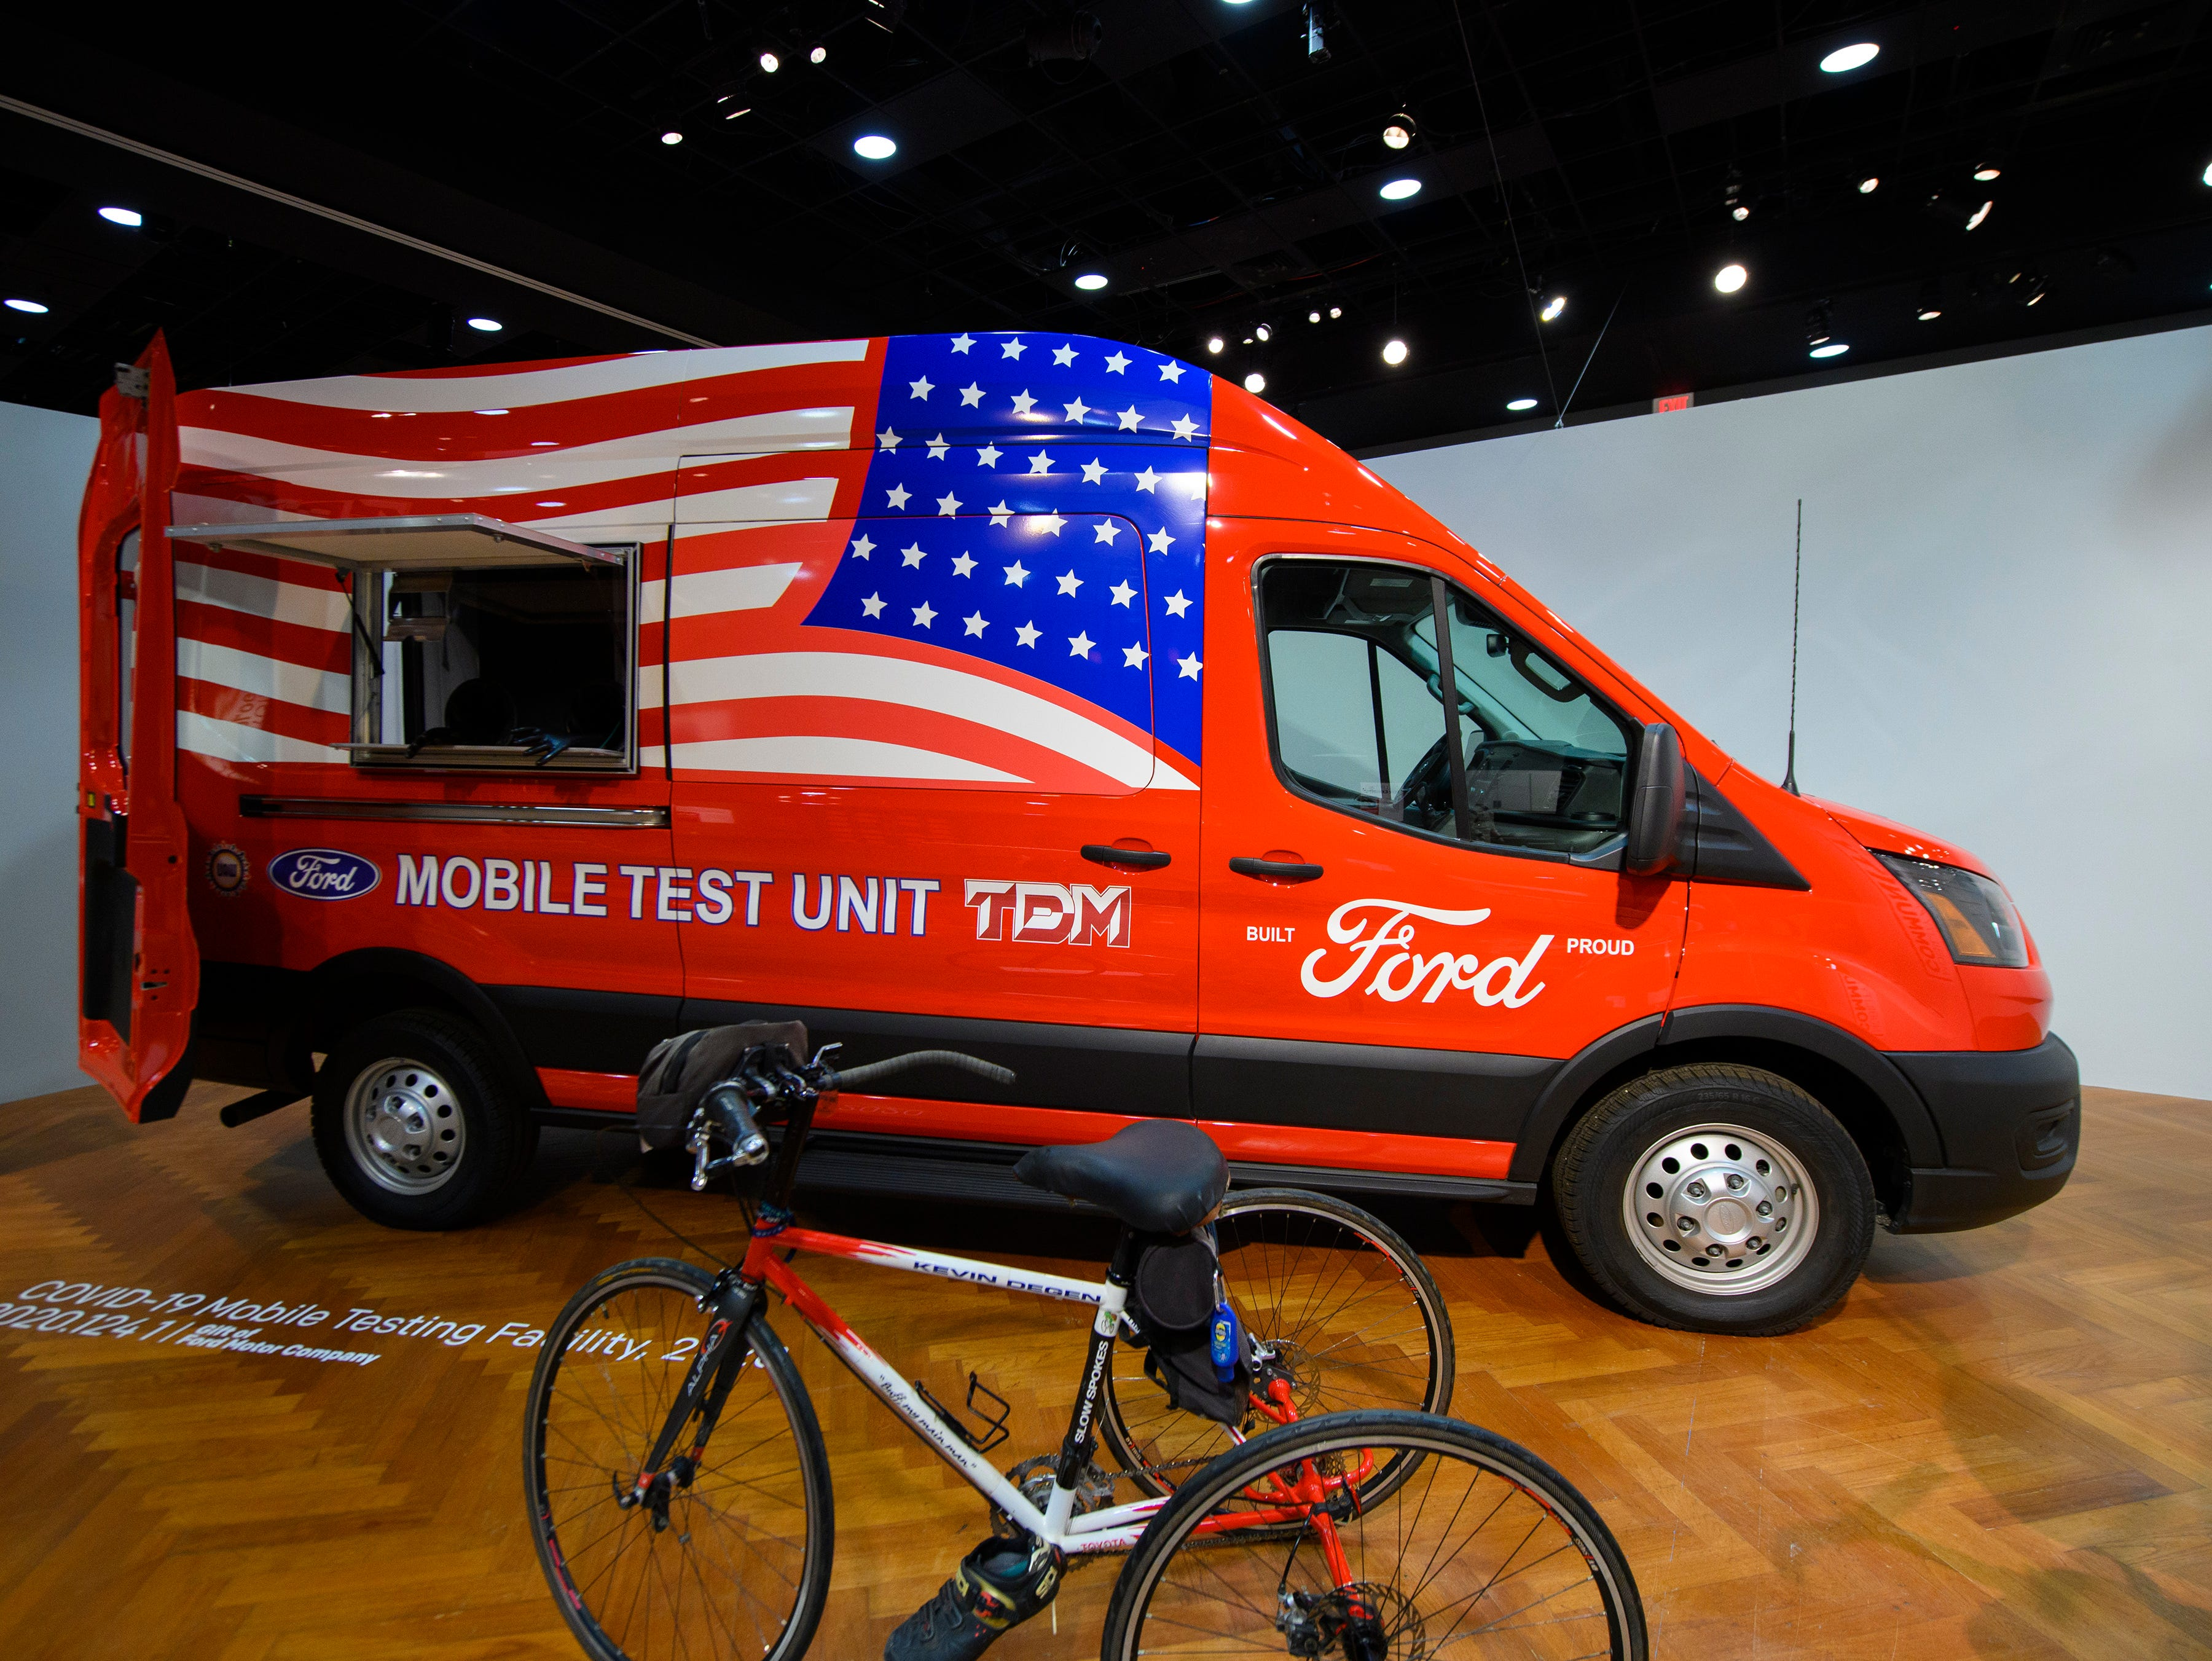 New Henry Ford exhibit is all about mobility old and new